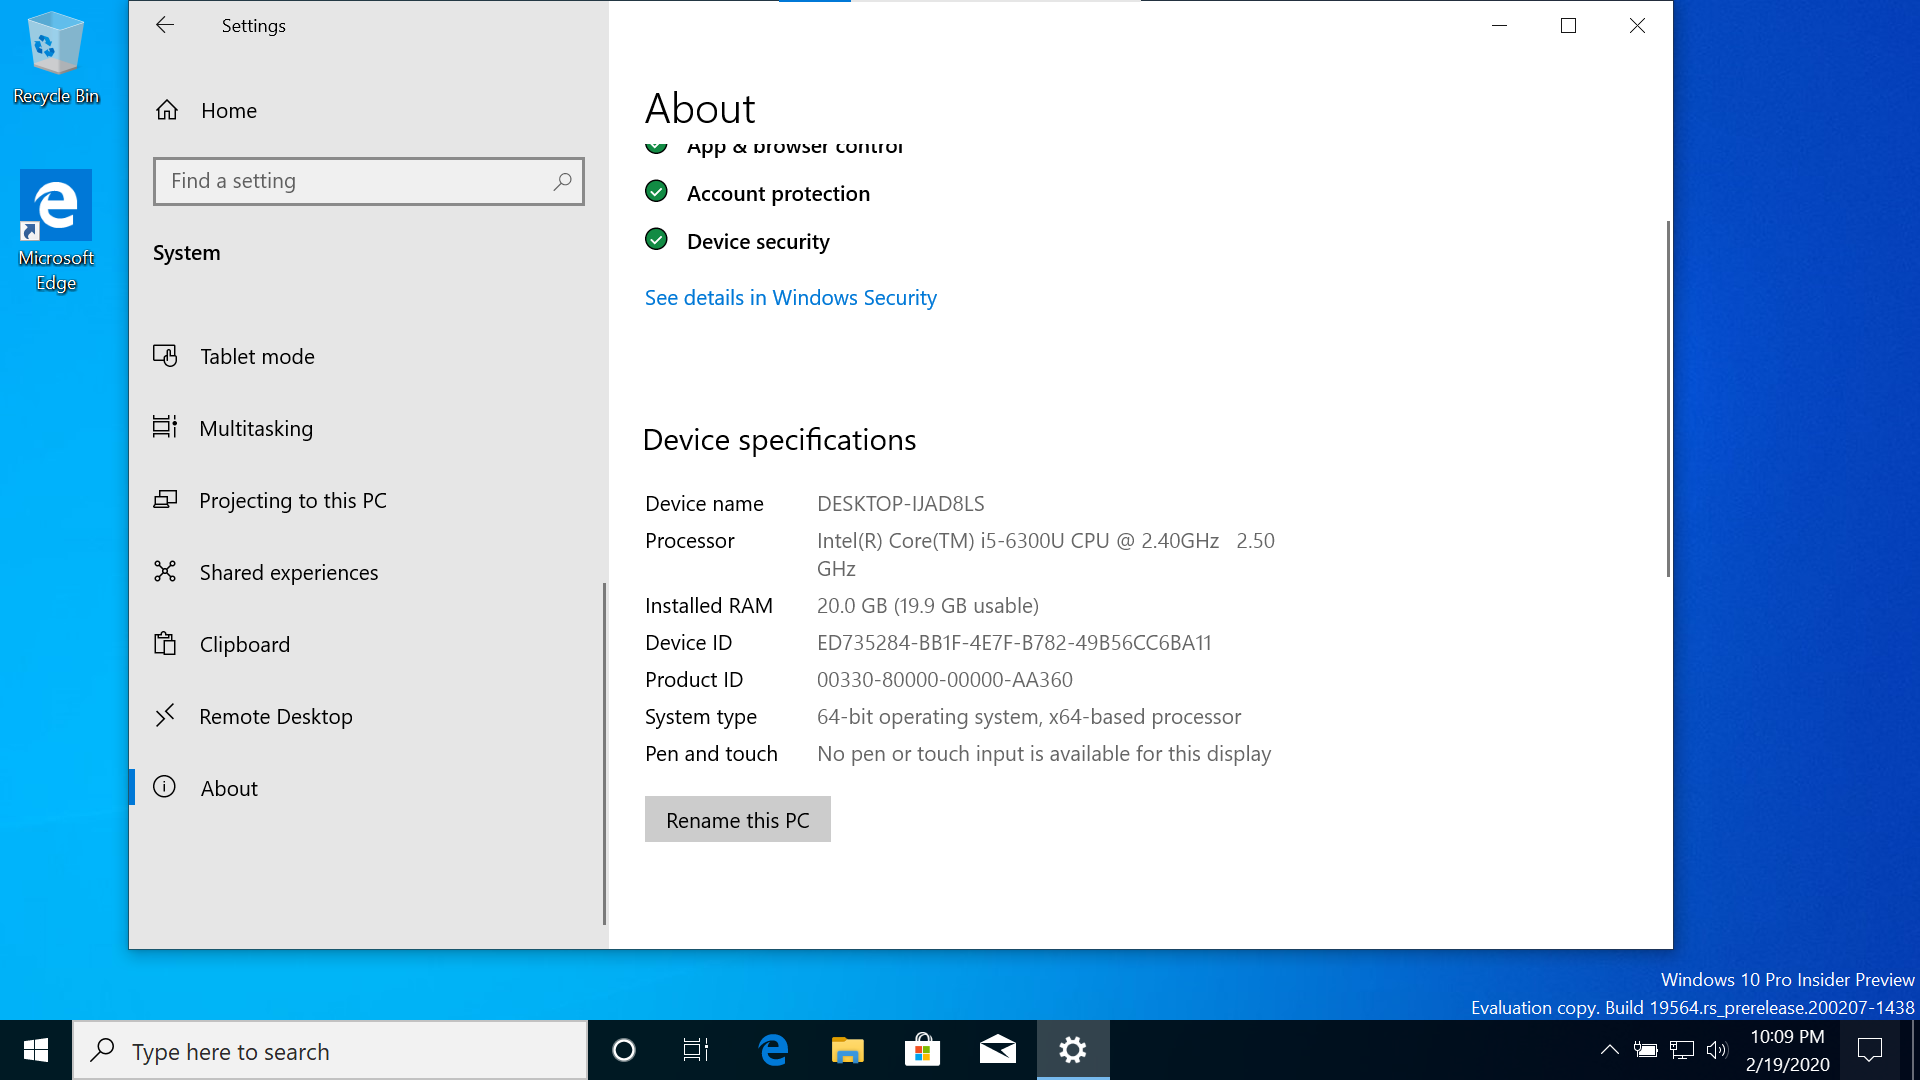 Dual-Boot Windows and Windows Insiders Builds Without Re-Partitioning